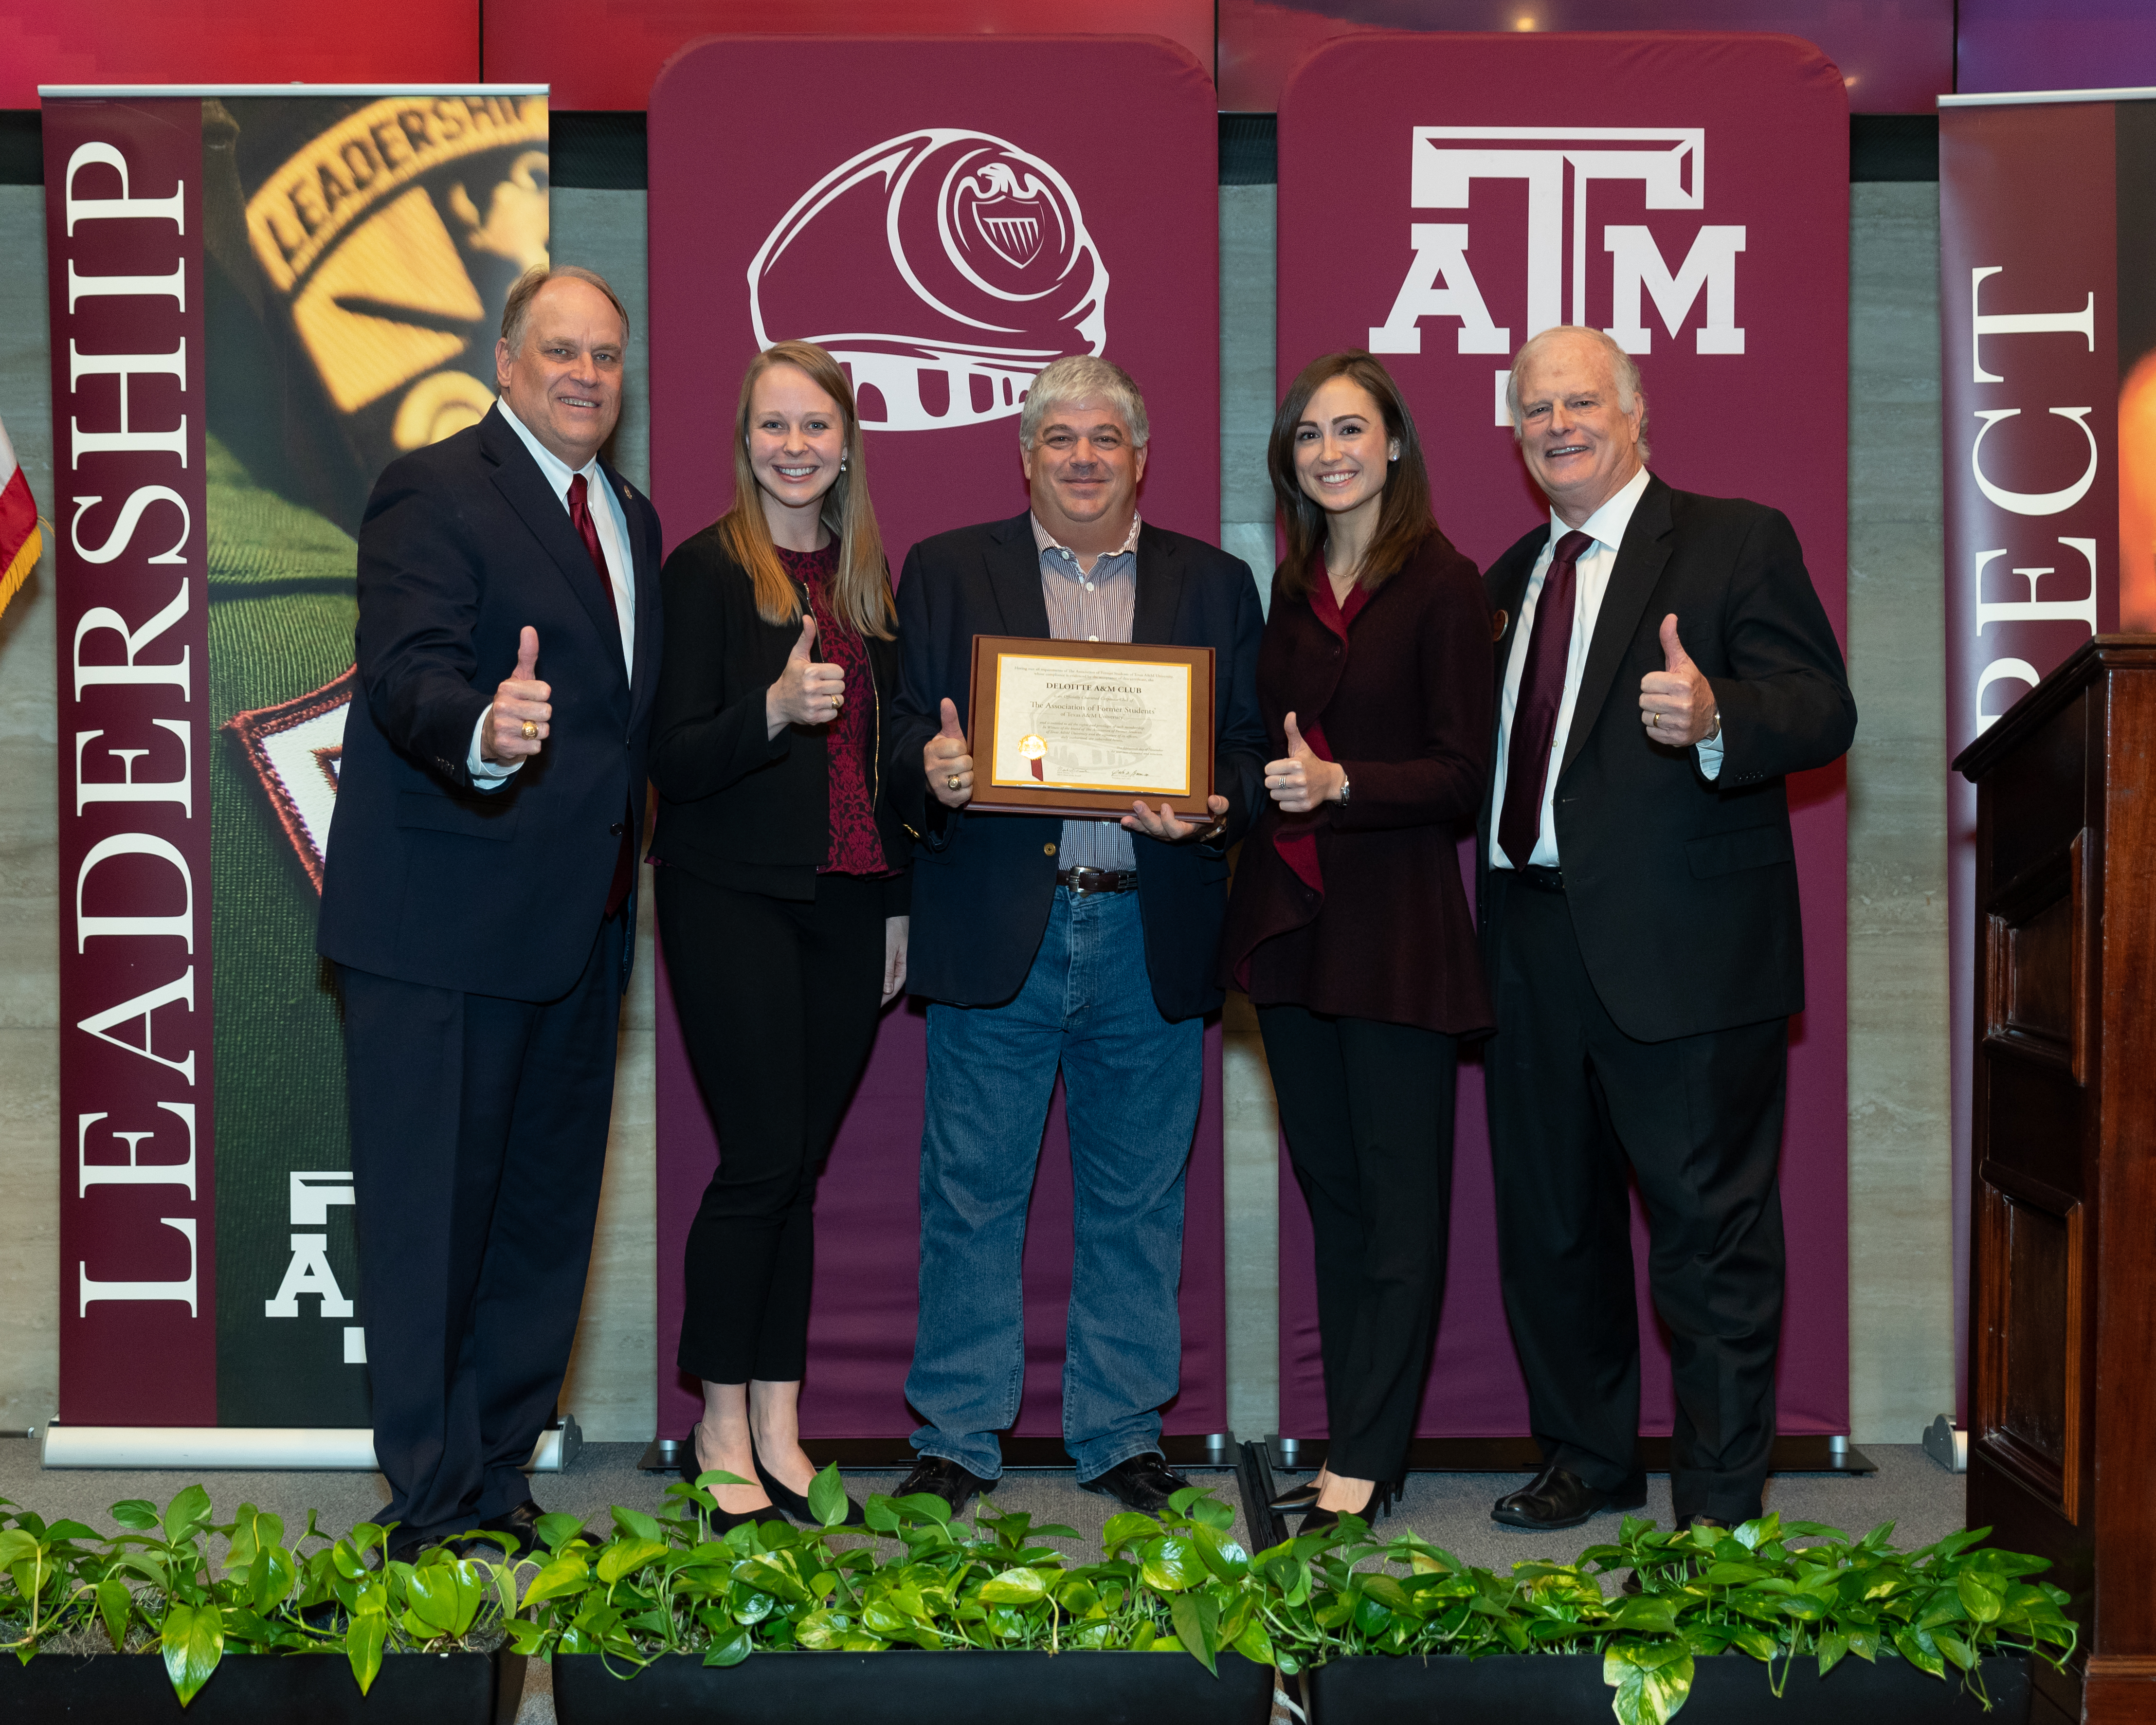 Deloitte Chartered As Second Corporate Texas A&M Club